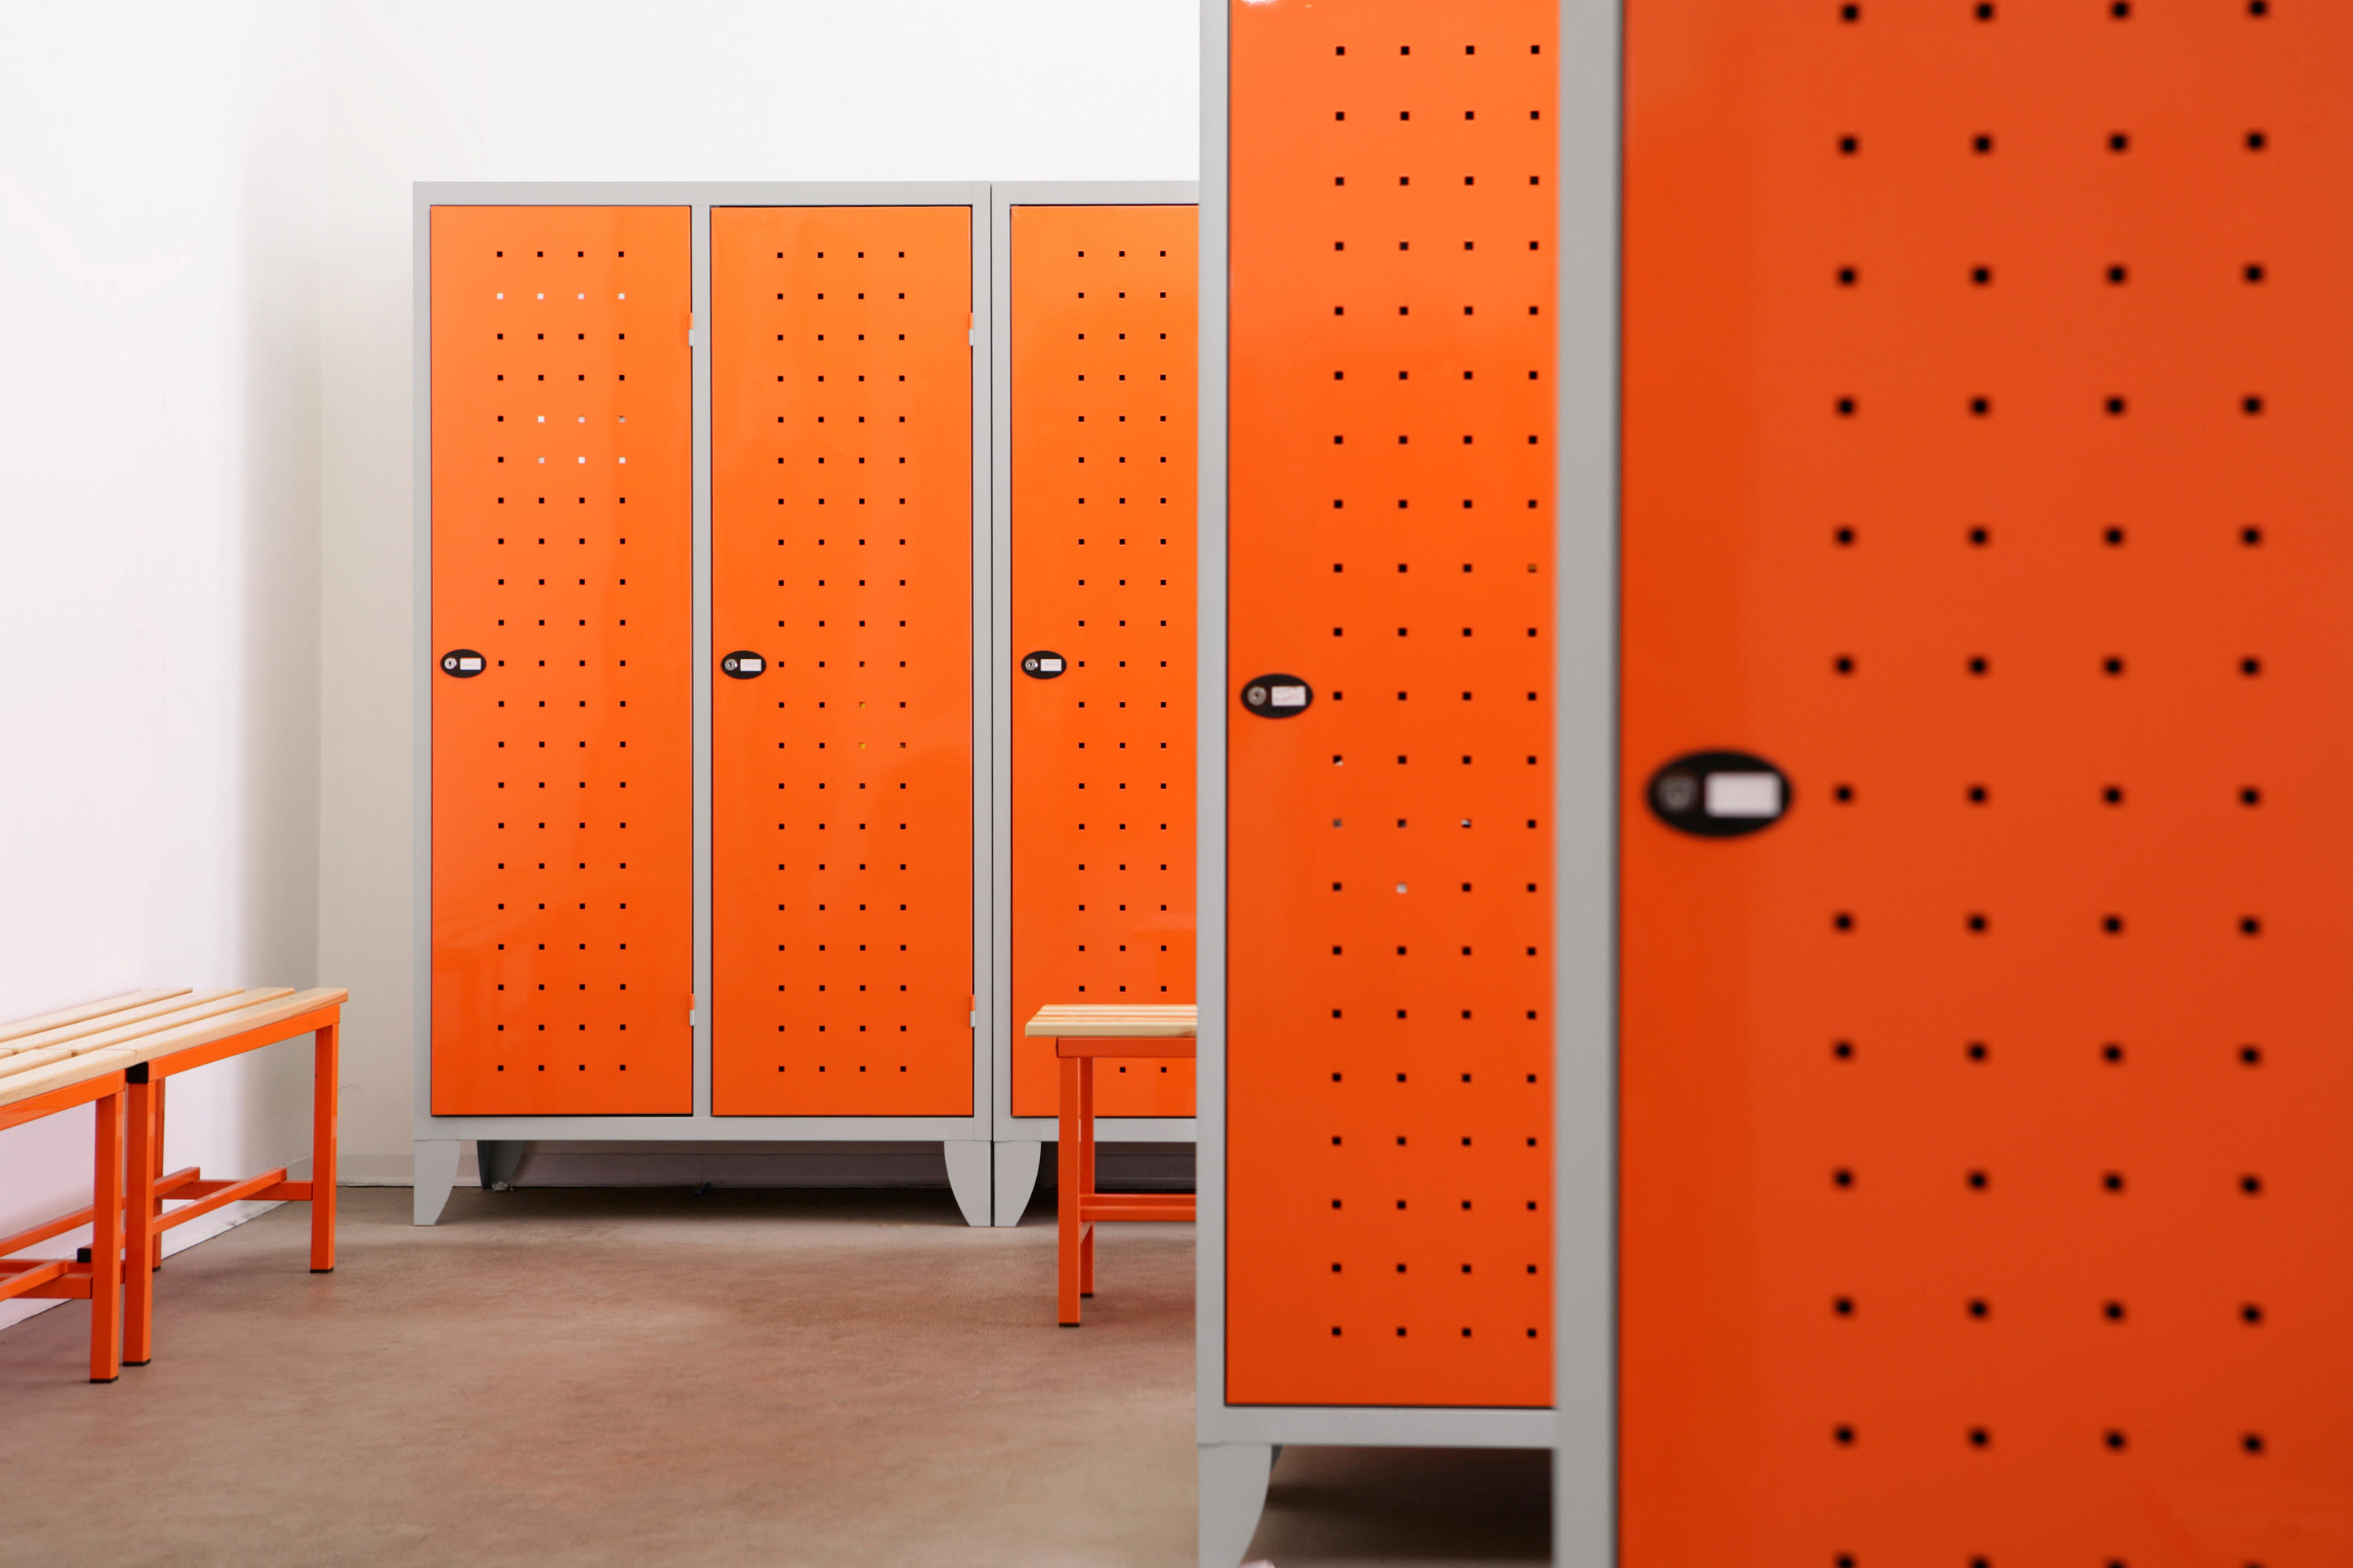 Monoplus design 1 door locker lockers from dieffebi Designer lockers